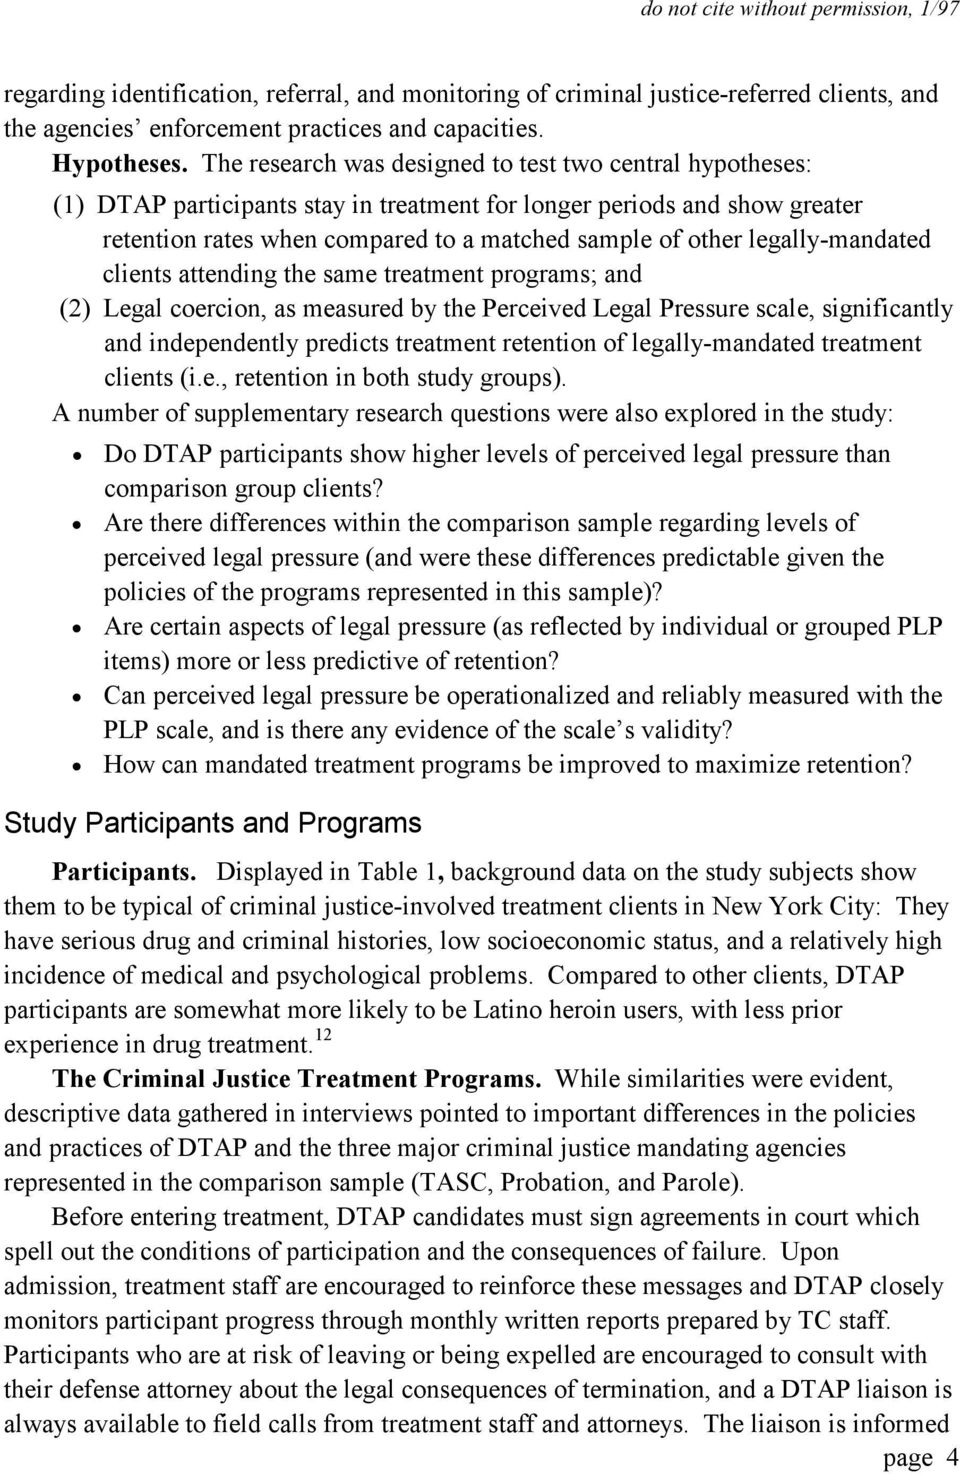 legally-mandated clients attending the same treatment programs; and (2) Legal coercion, as measured by the Perceived Legal Pressure scale, significantly and independently predicts treatment retention